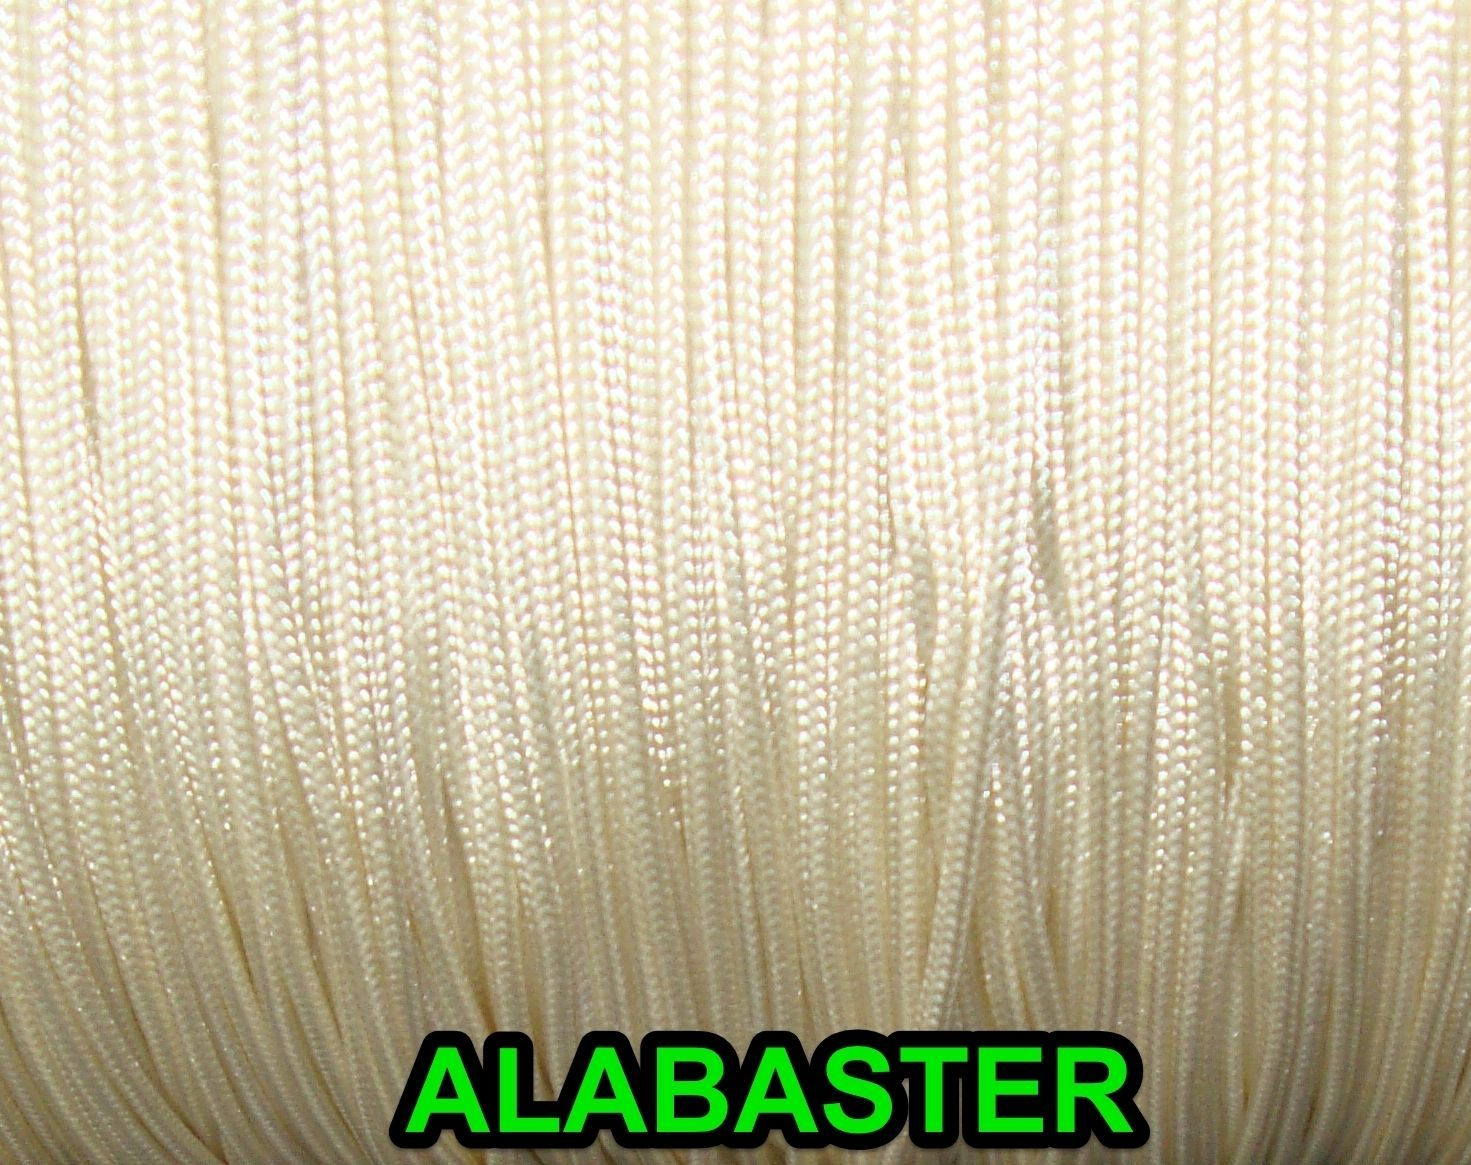 50 FEET:1.8mm ALABASTER LIFT CORD for Blinds, Roman Shades and More